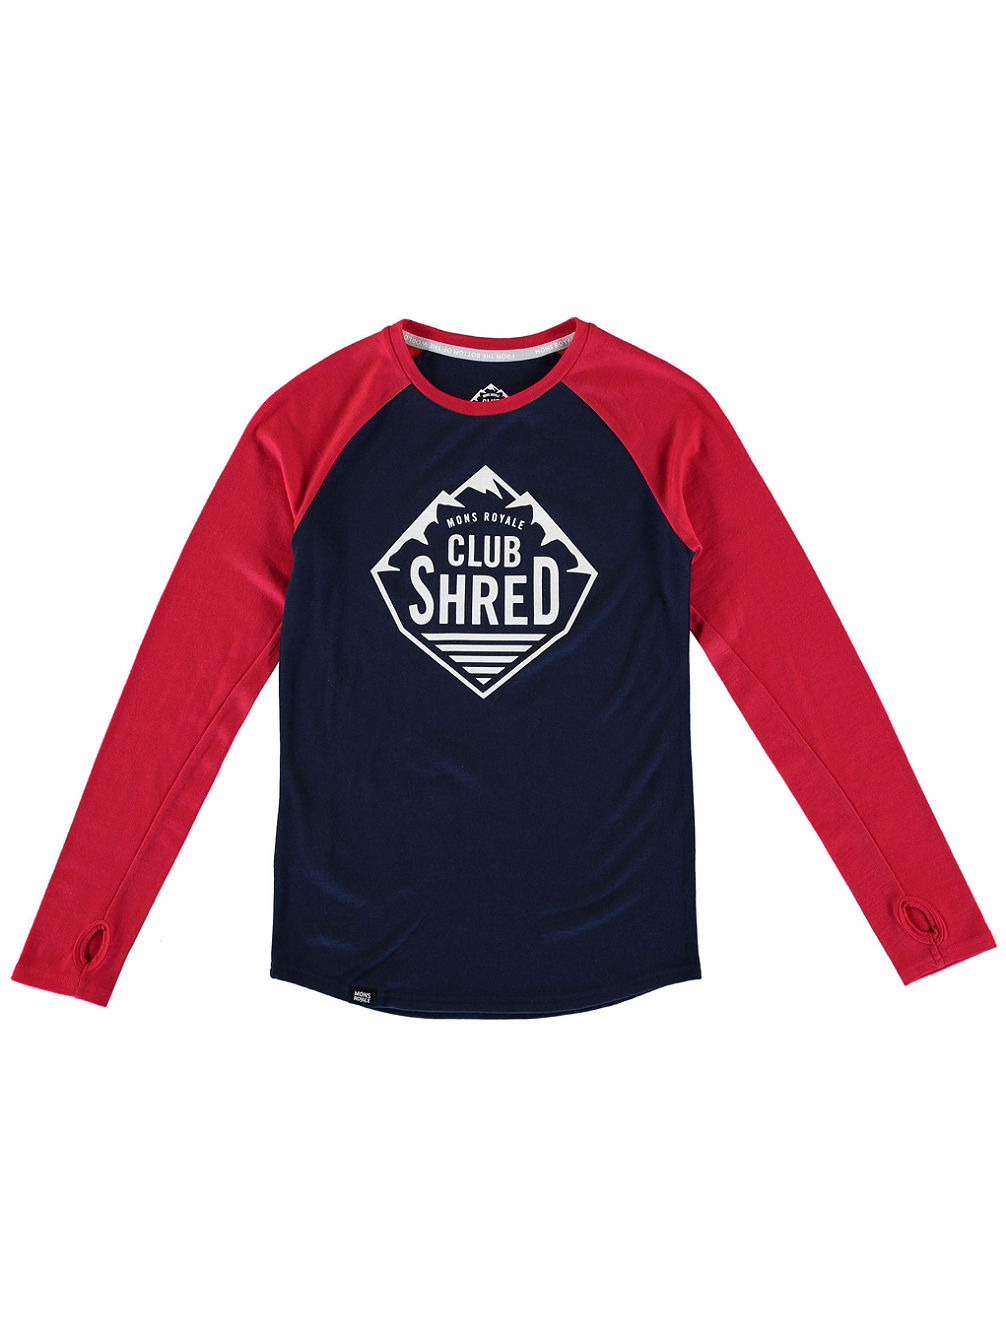 Merino Tech Tee LS Girls